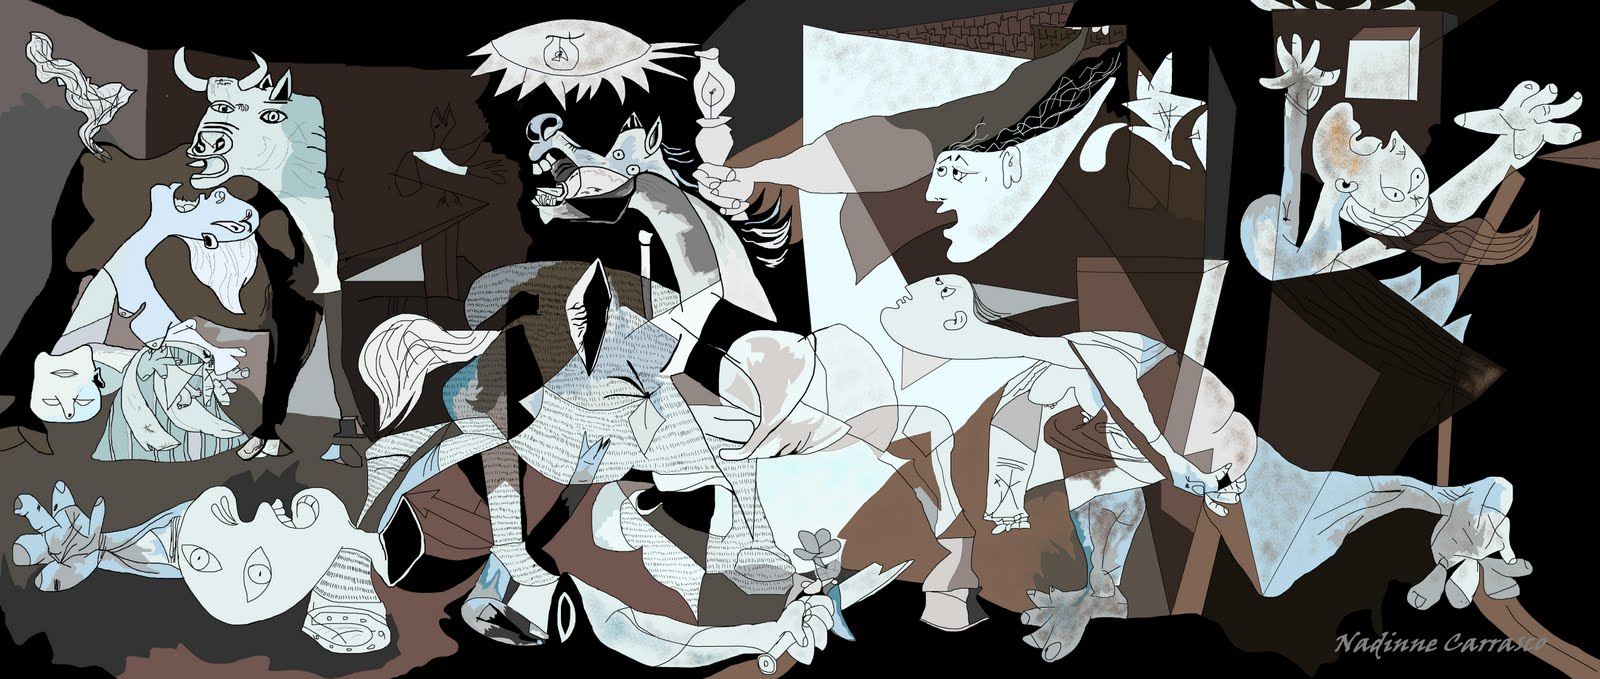 an analysis of guernica by pablo picasso